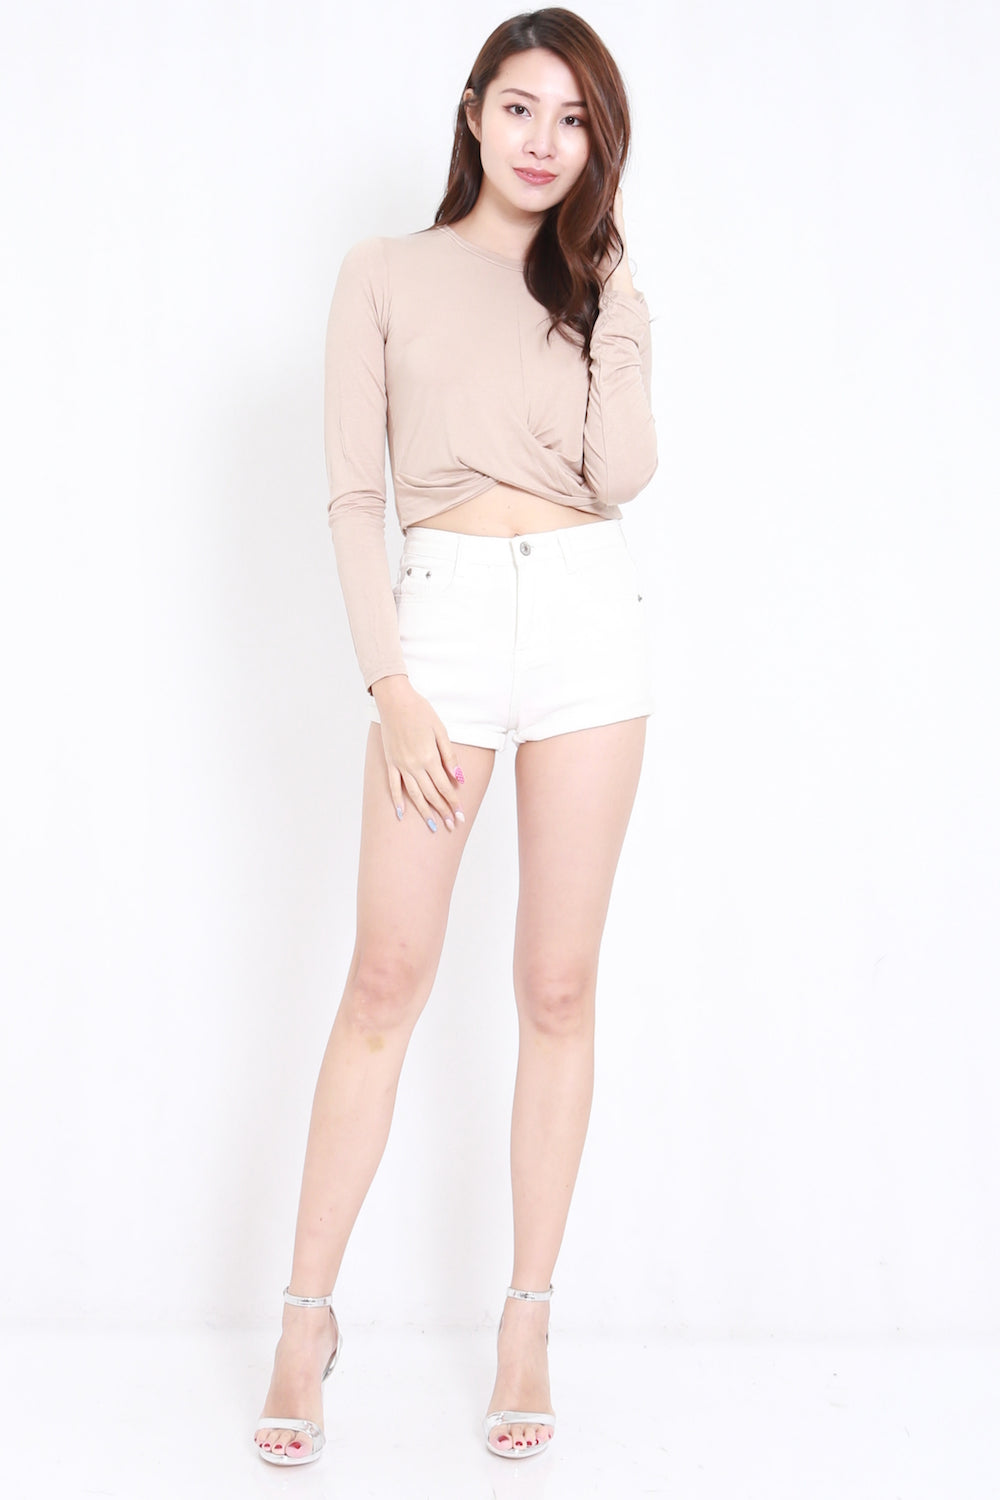 nude ls  Front Twisted LS Tee (Nude)